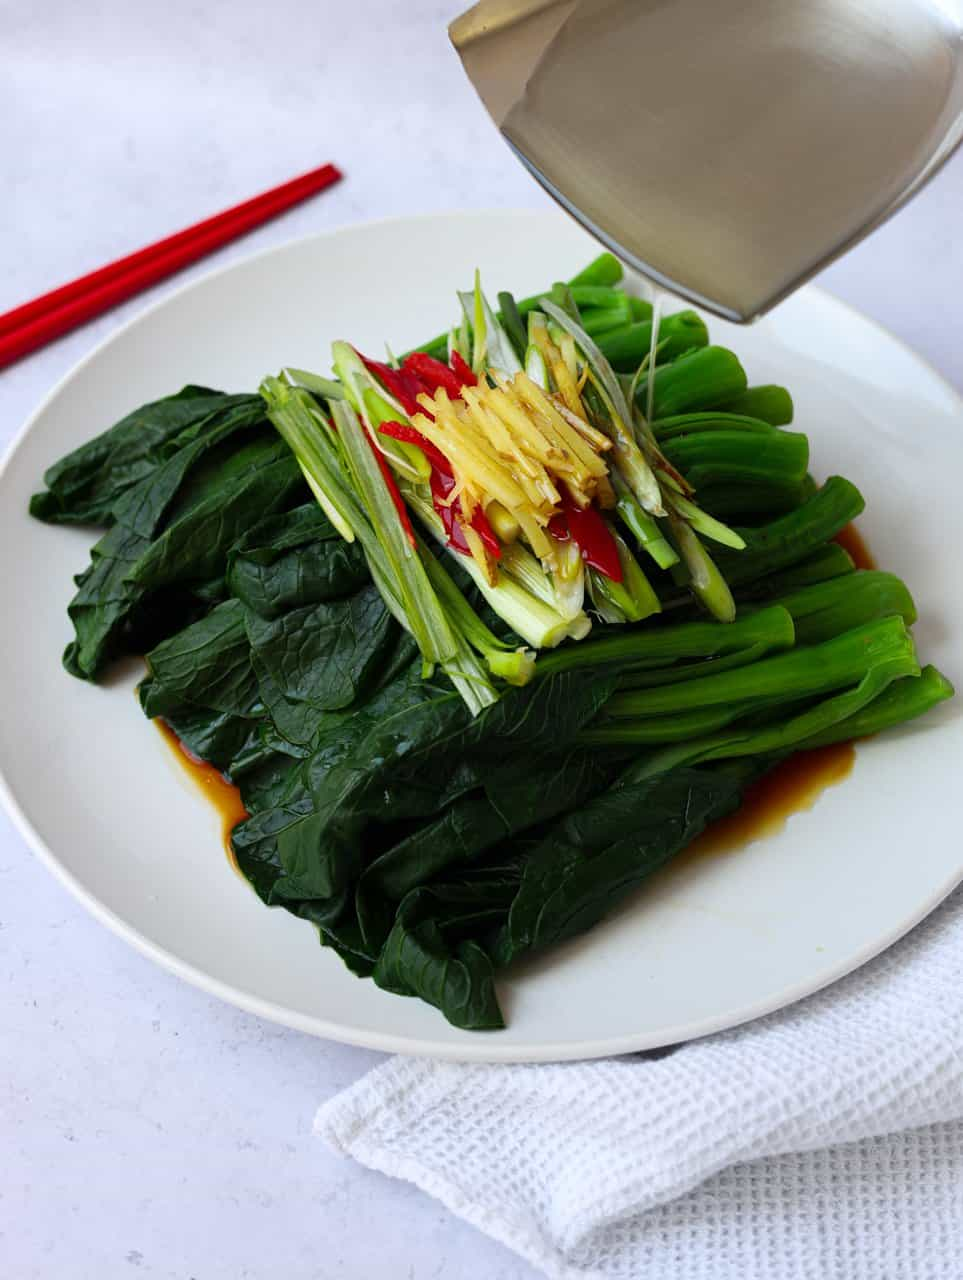 Choy Sum with Sizzling Oil